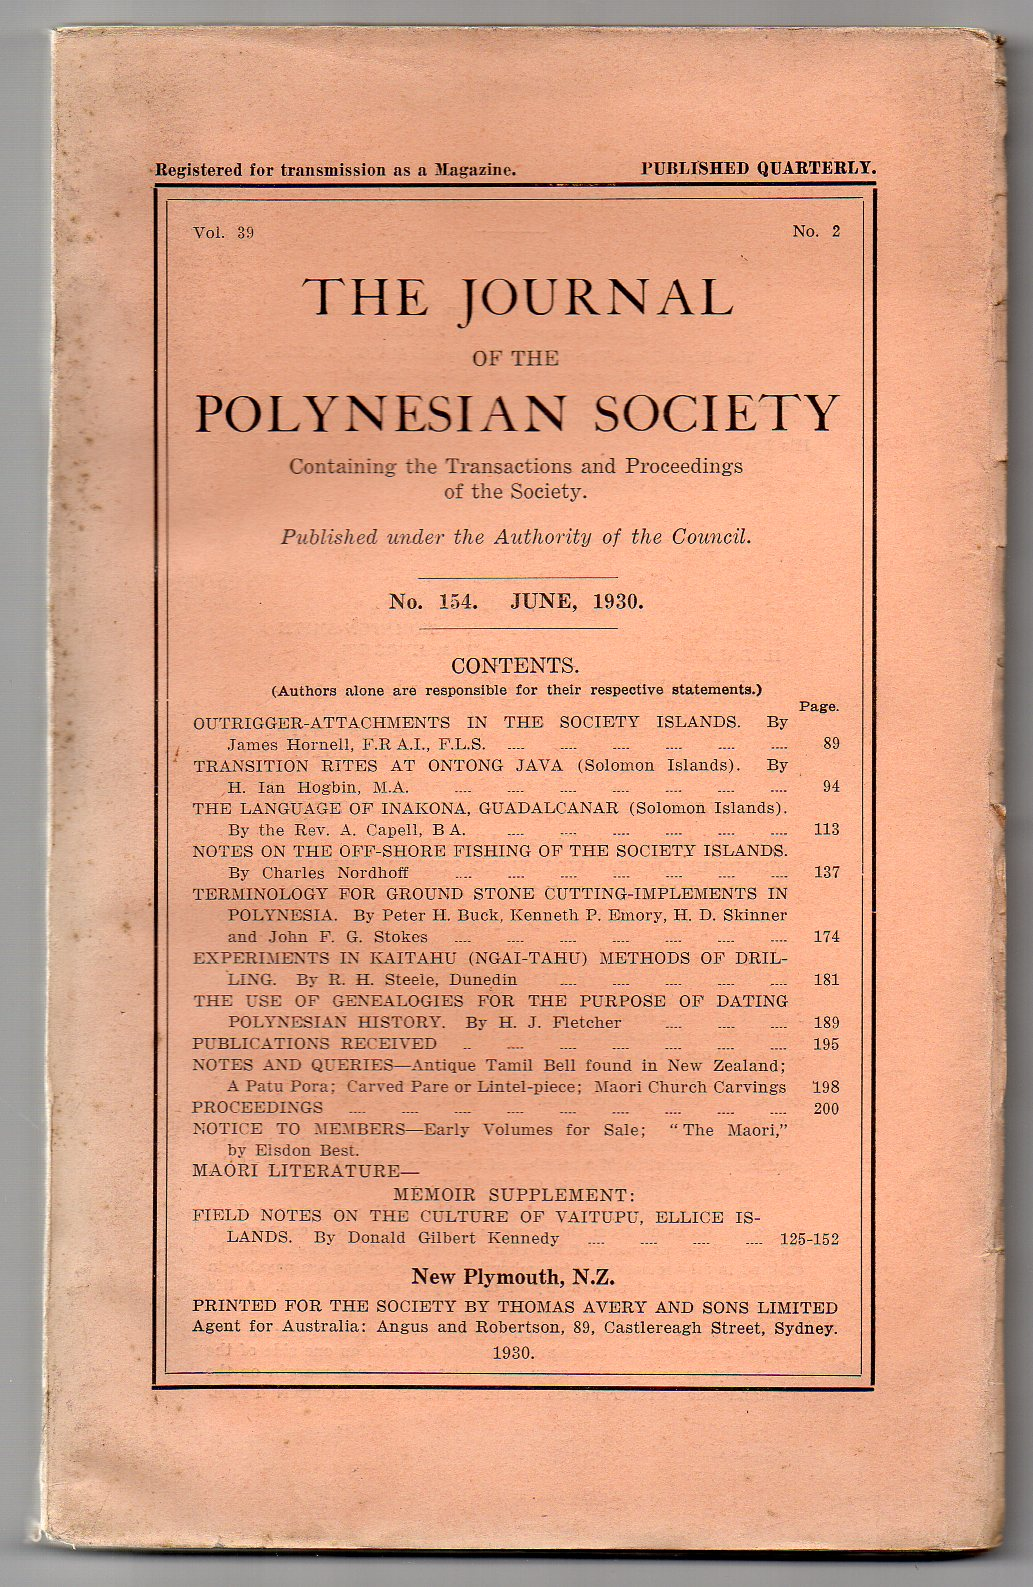 Image for The Journal of the Polynesian Society. No. 154. June, 1930 - Vol. 39, No. 2.